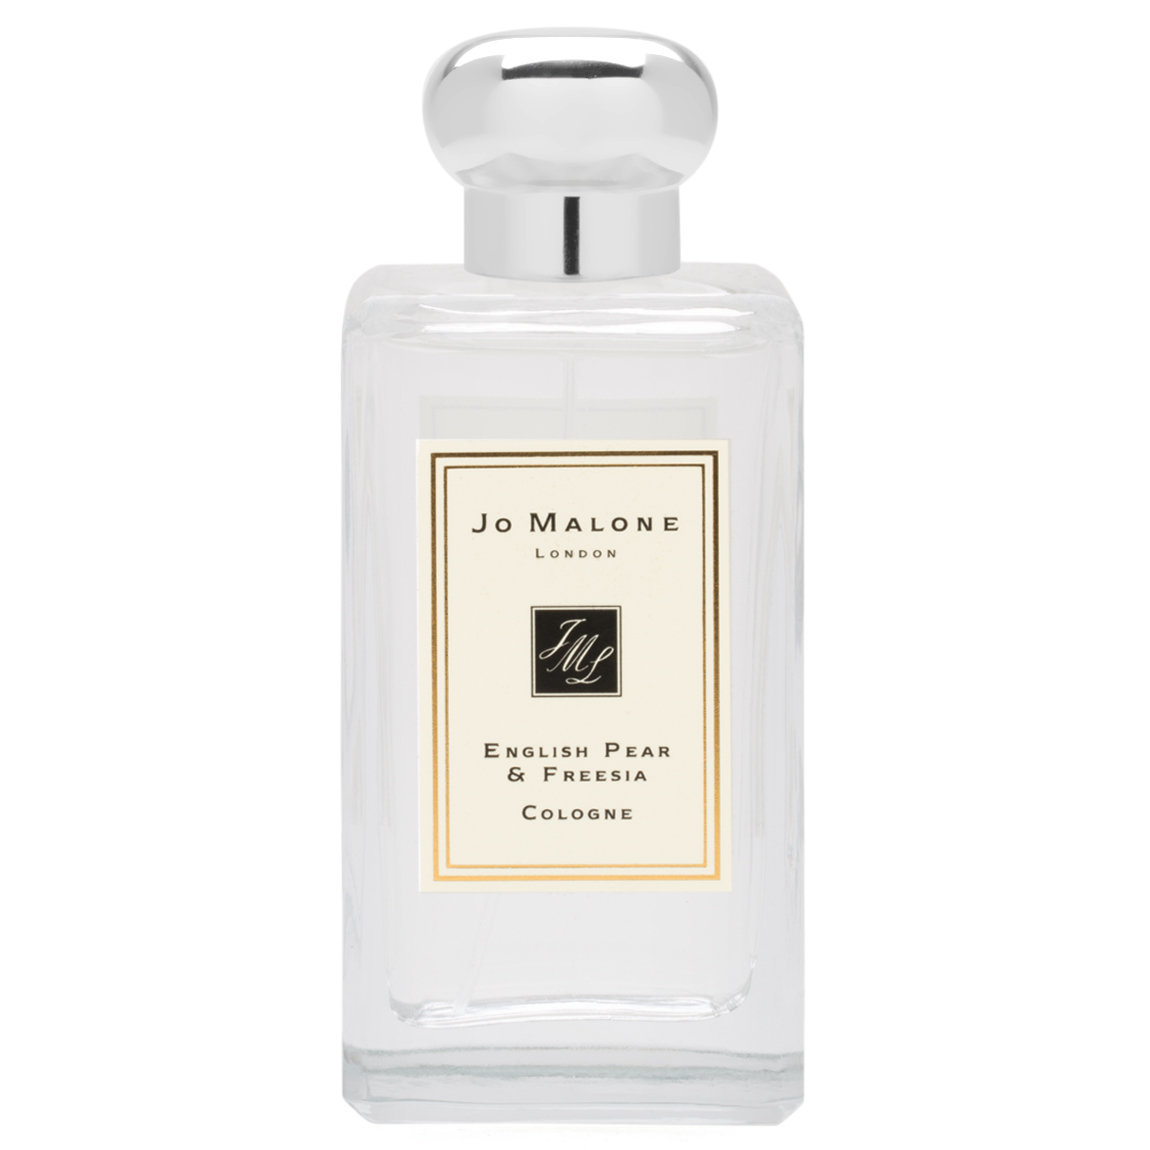 Jo Malone London English Pear & Freesia Cologne 100 ml alternative view 1 - product swatch.